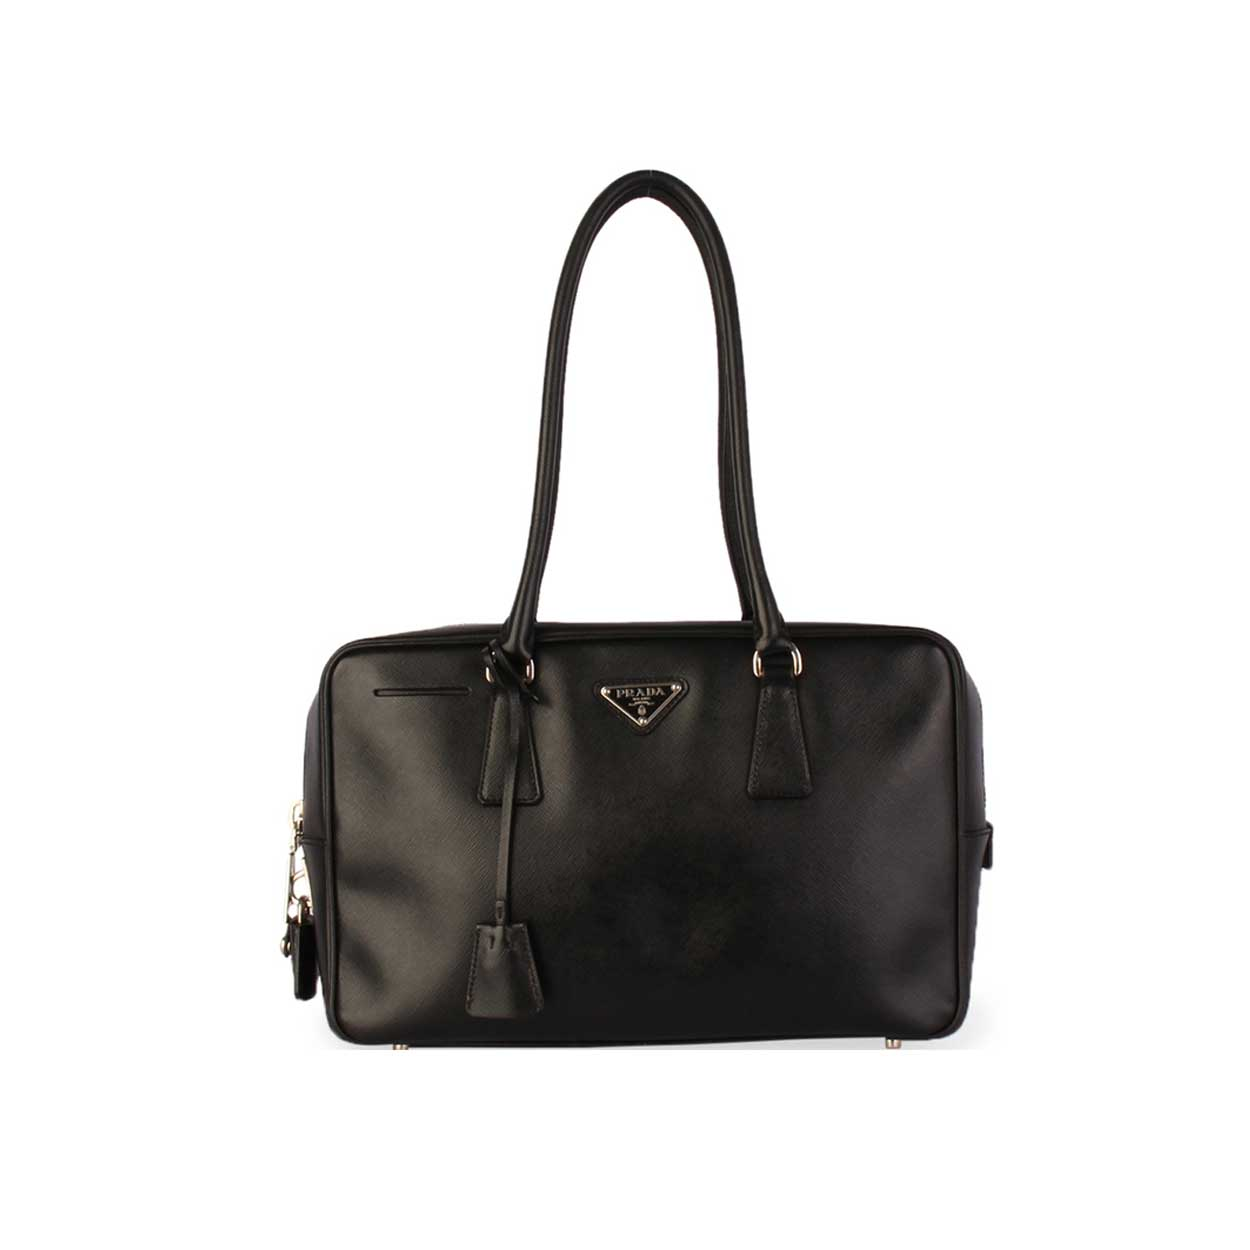 b766b8035763 Prada | Shop Authenticated Pre-Owned Luxury Items